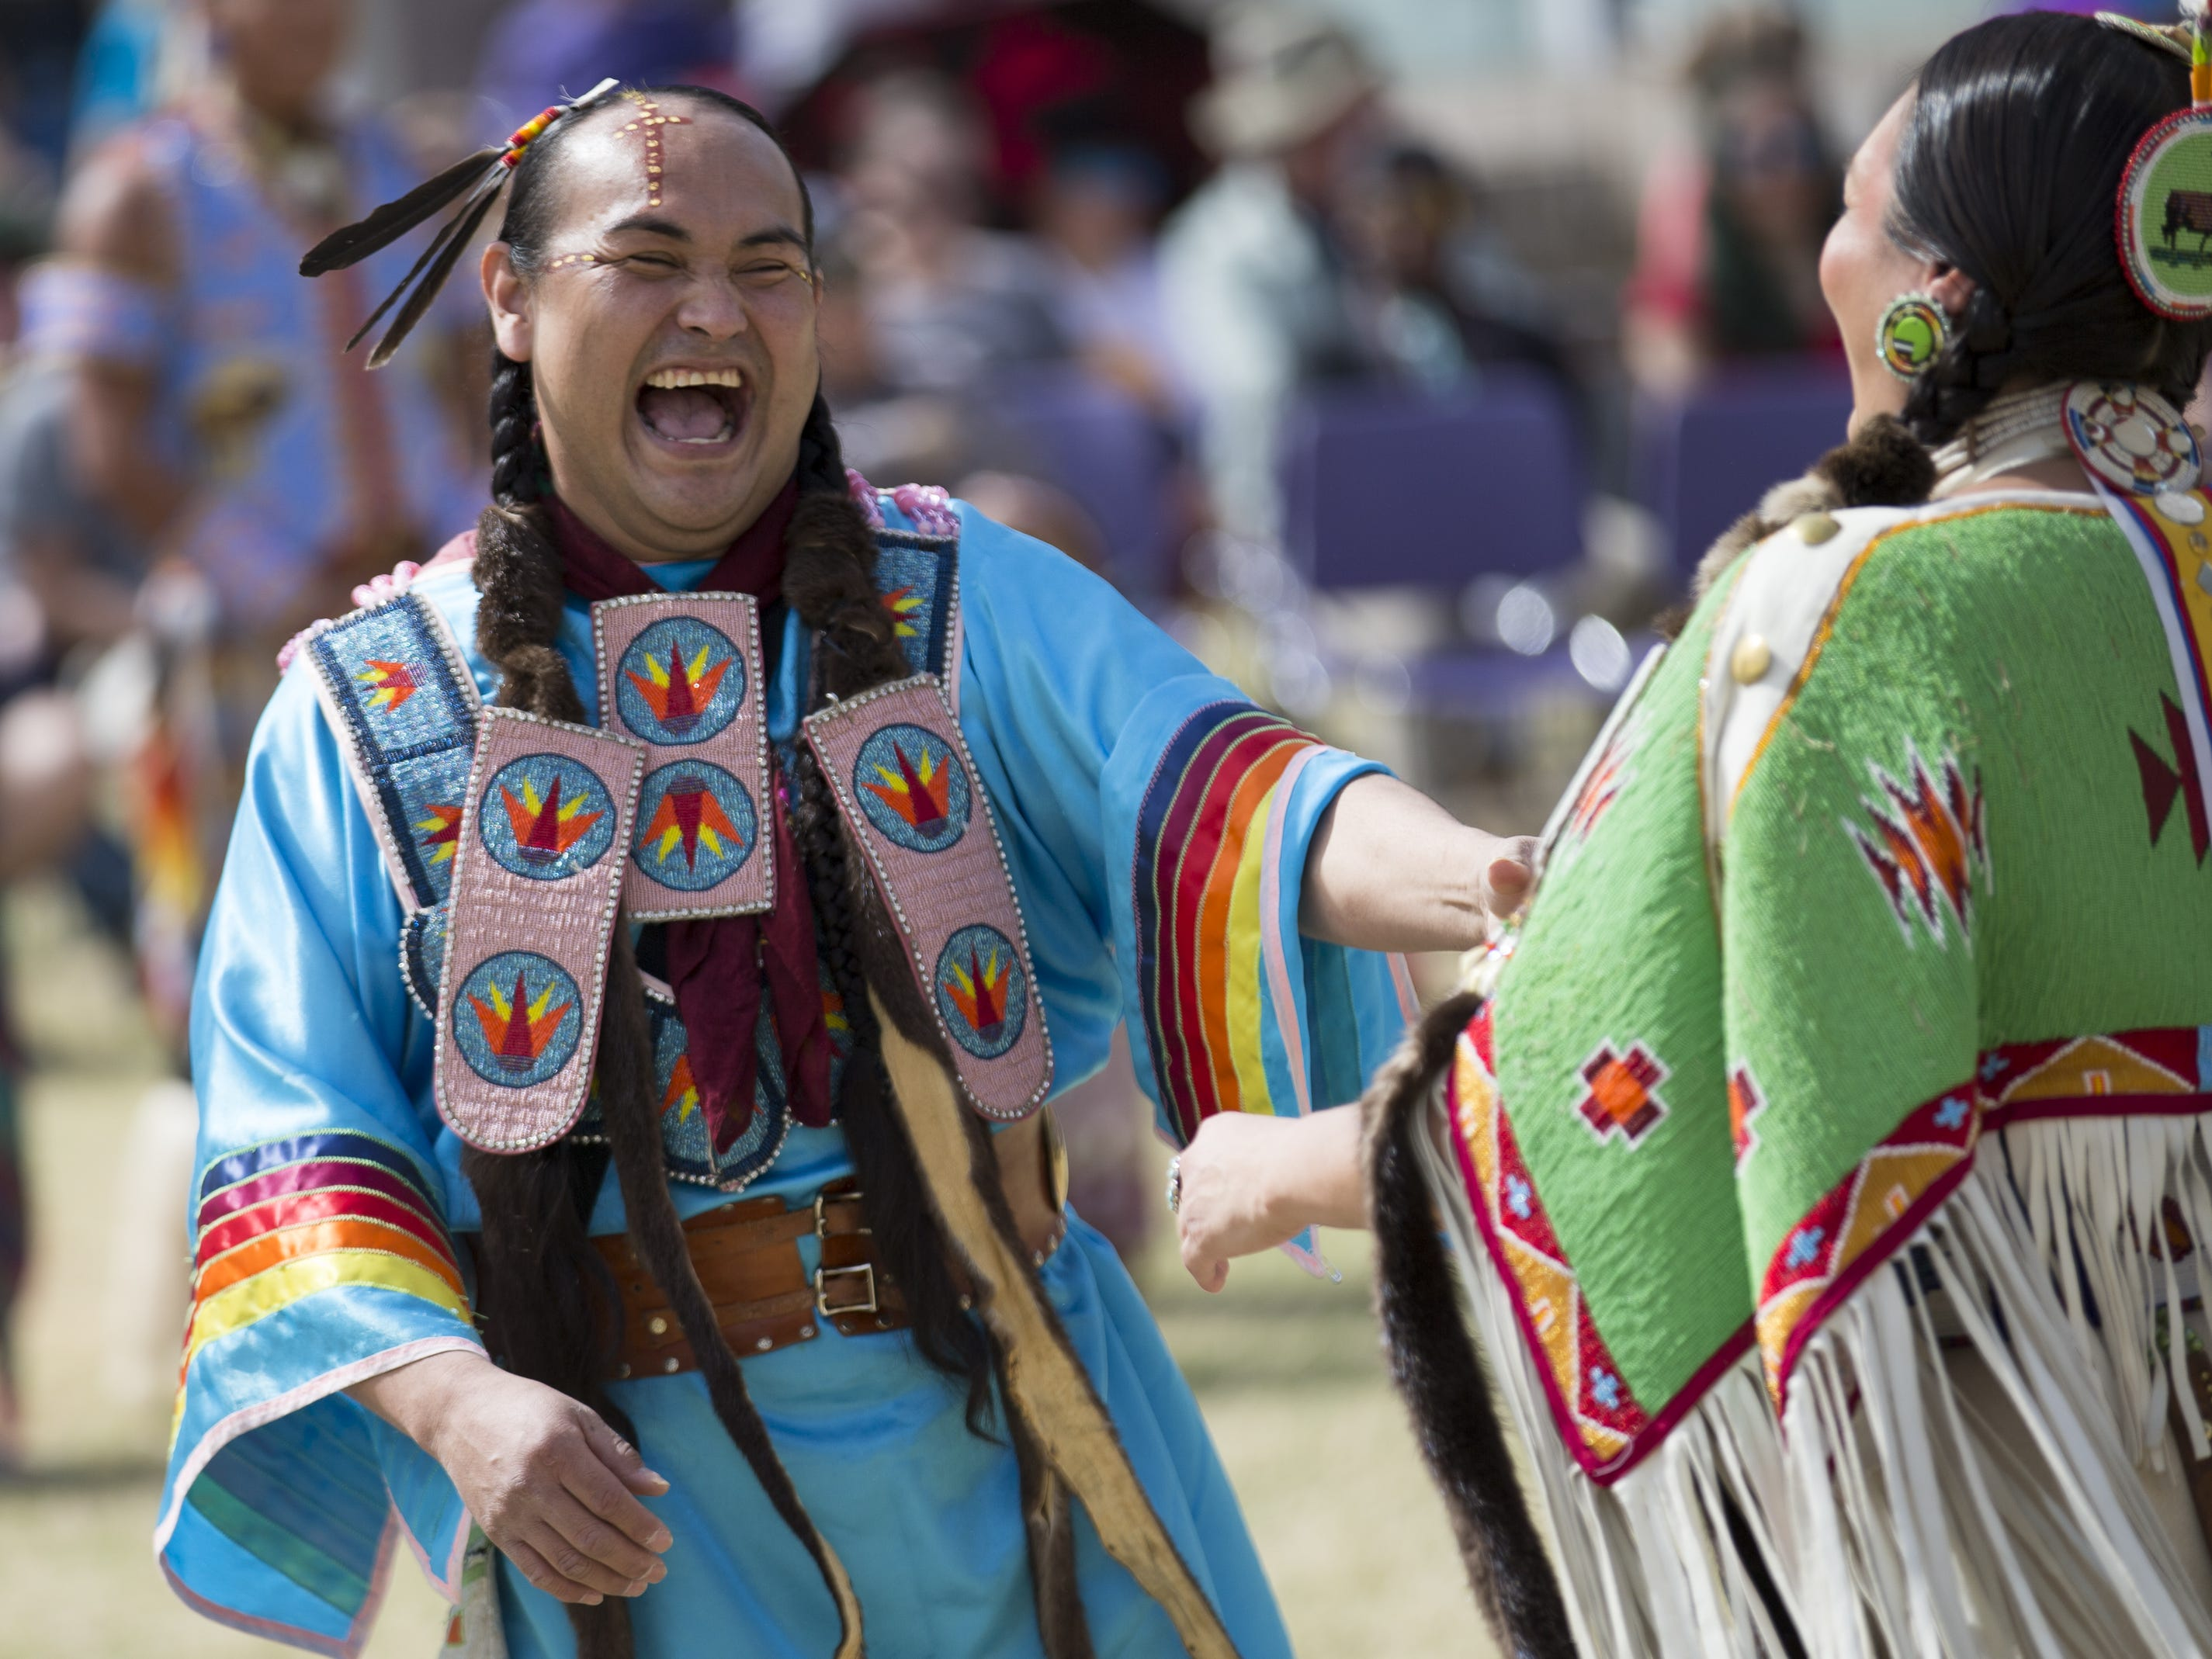 John Sneezy of the San Carlos Apache tribe (left) dances at the Native Two Spirit Powwow at South Mountain Community College in Phoenix, Ariz. on Saturday, March 9, 2019. The powwow was the first of its kind in Arizona, featuring members who identified as two spirit, and members who did not, dancing together.